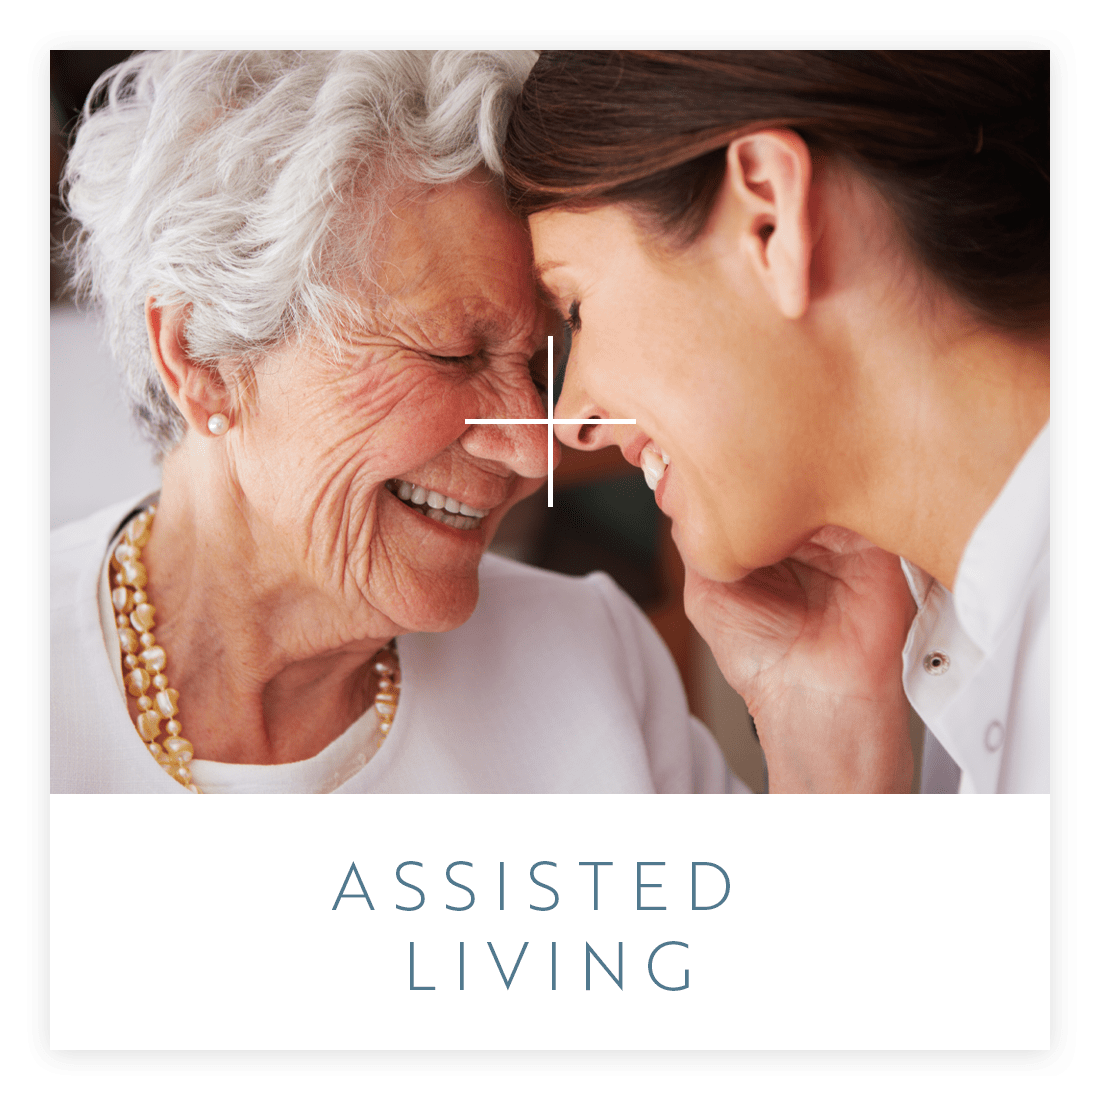 View our Assisted Living services at Estancia Senior Living in Fallbrook, California